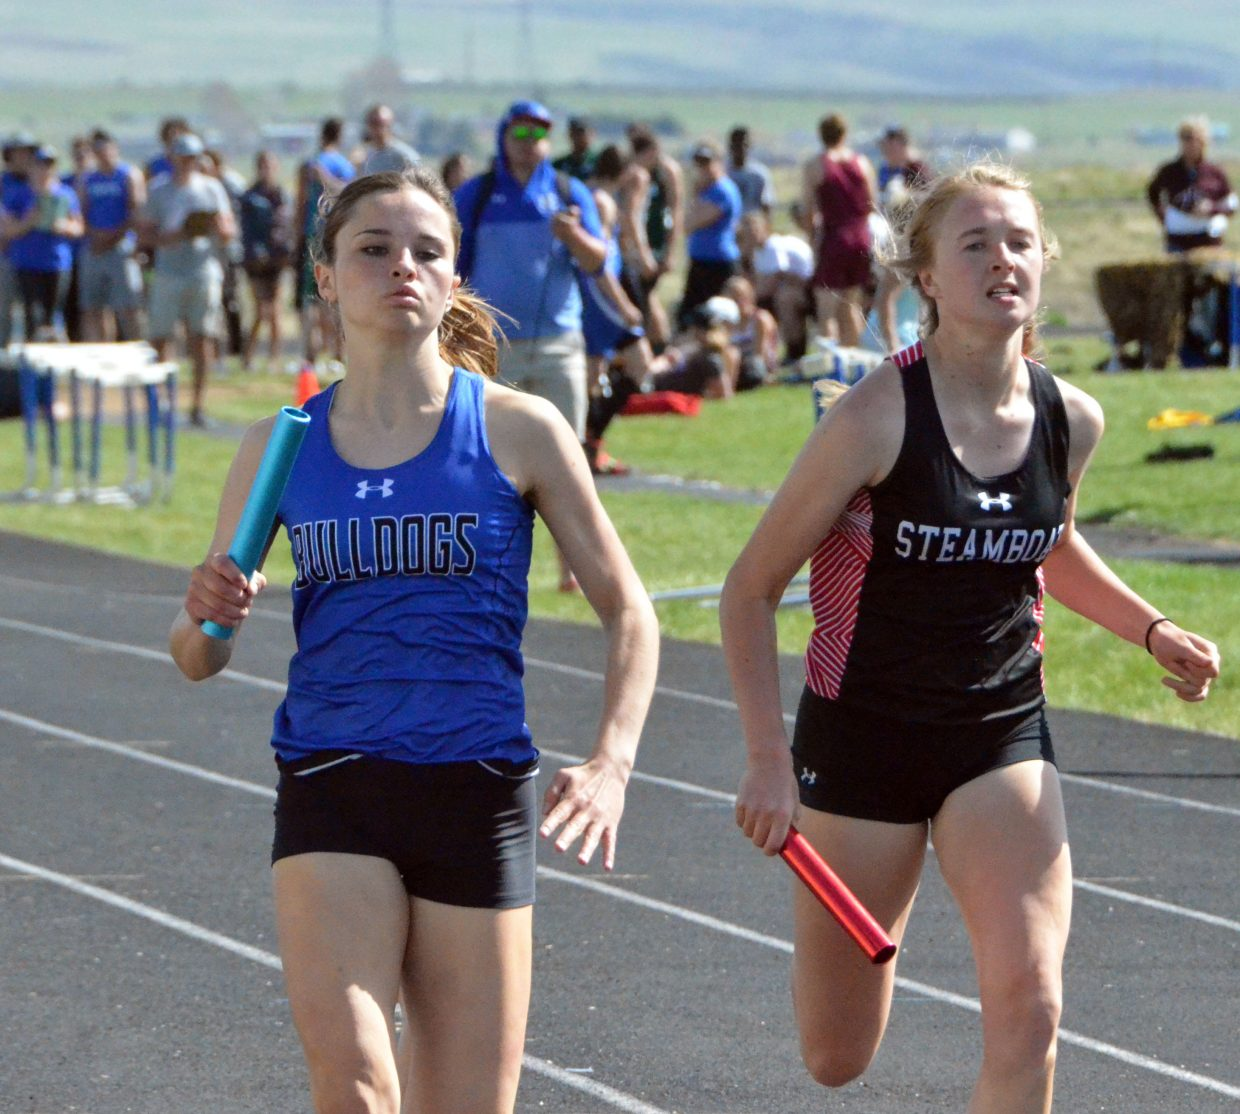 Moffat County High School's Stephenie Swindler works to keep the lead in the first leg of the girls 4x400-meter relay Friday at the Clint Wells Invitational.